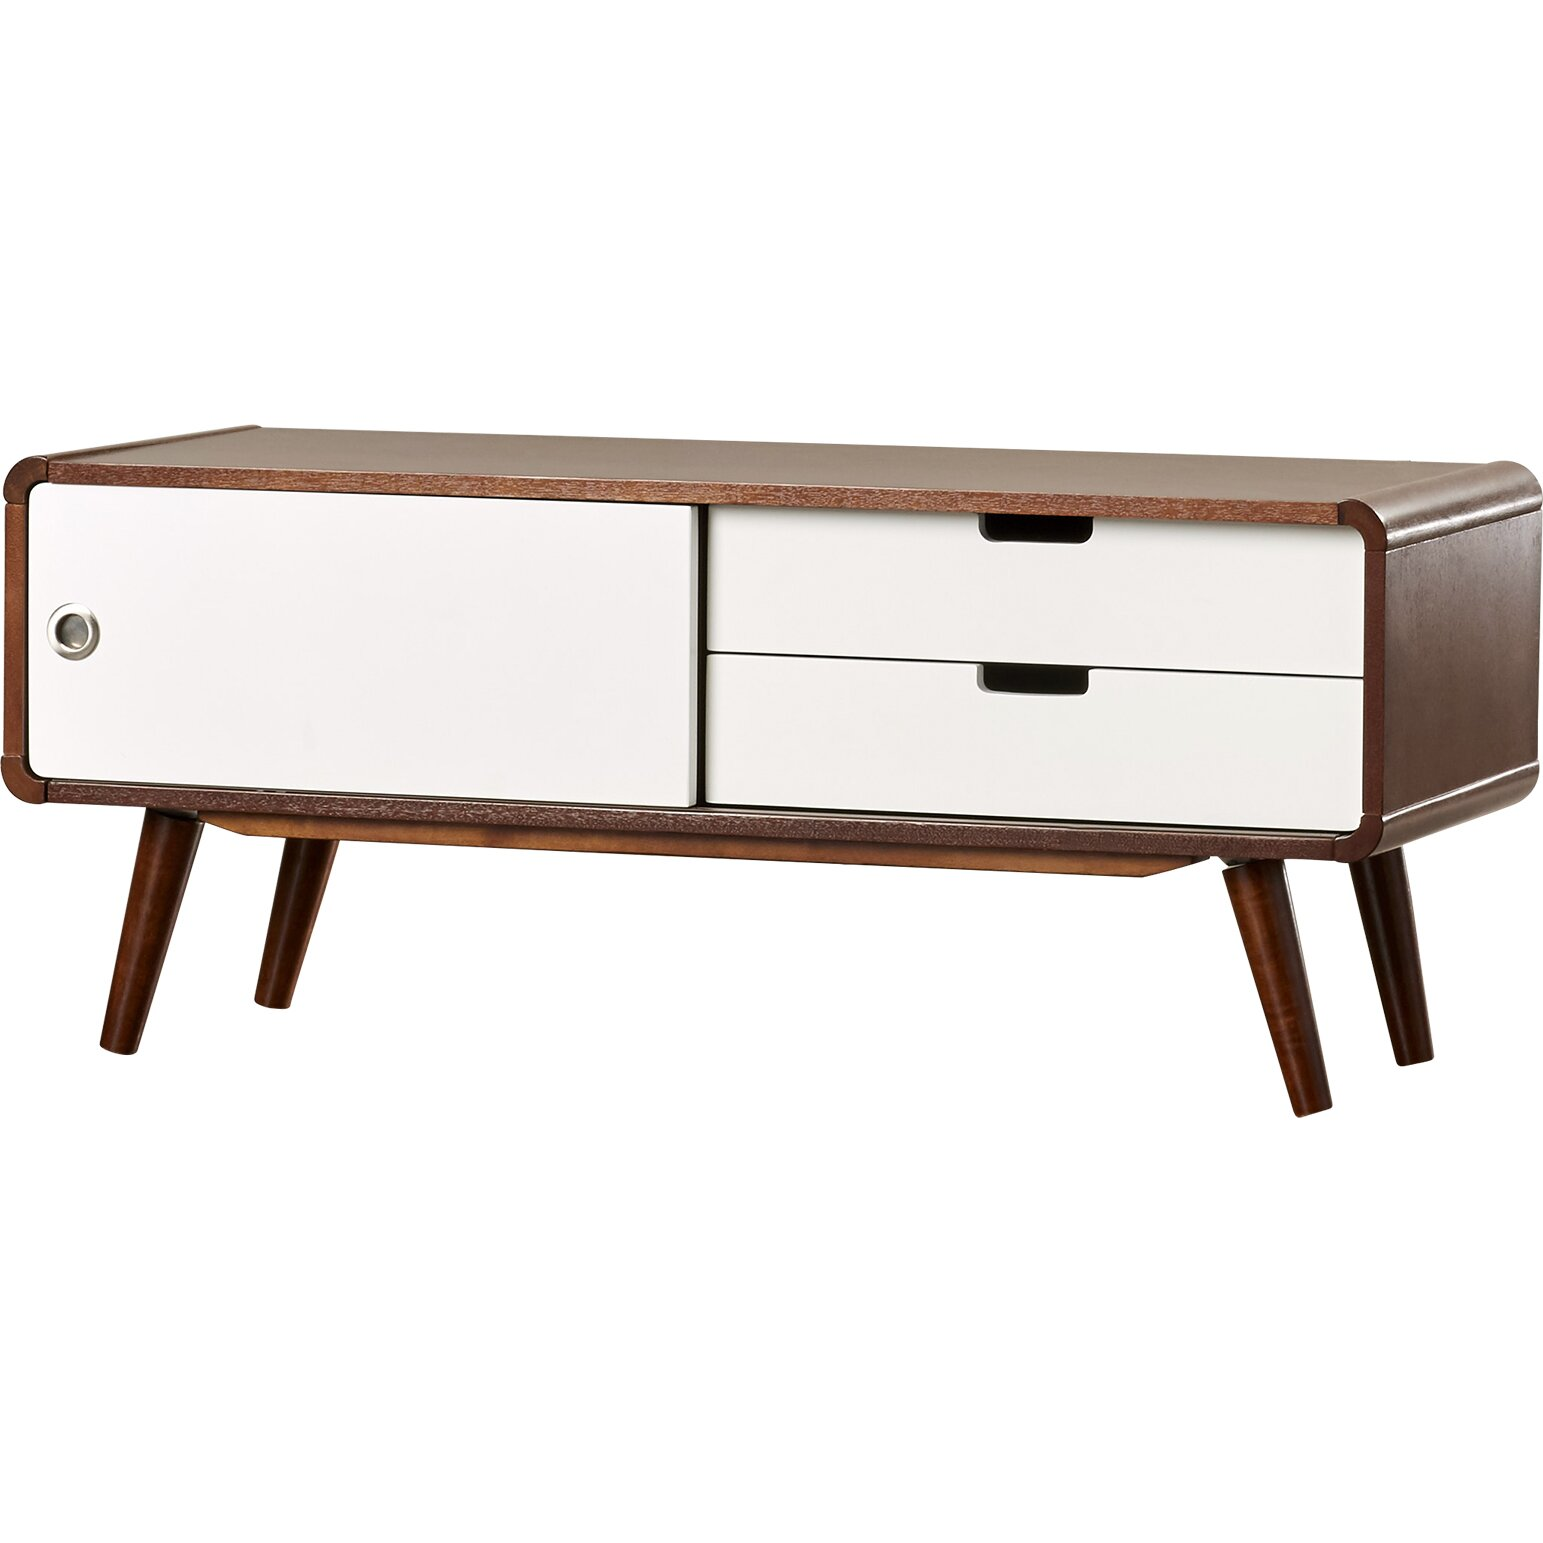 Langley street soren tv stand reviews for Outdoor furniture langley